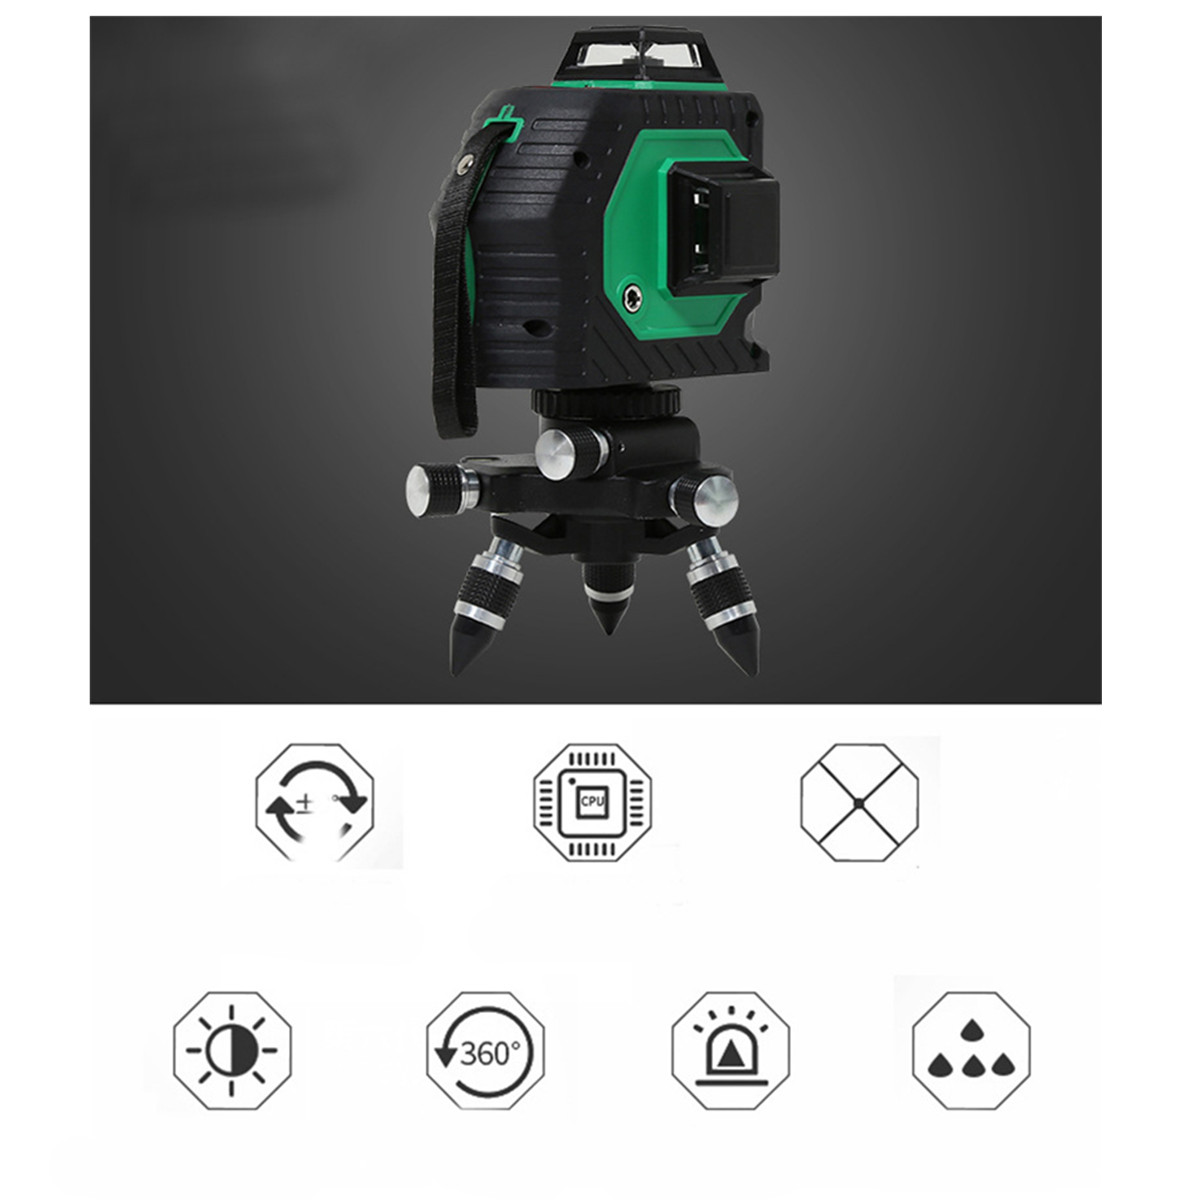 Green 3D 12 Line 360° Laser Level Auto Self Leveling Vertical Horizontal Level